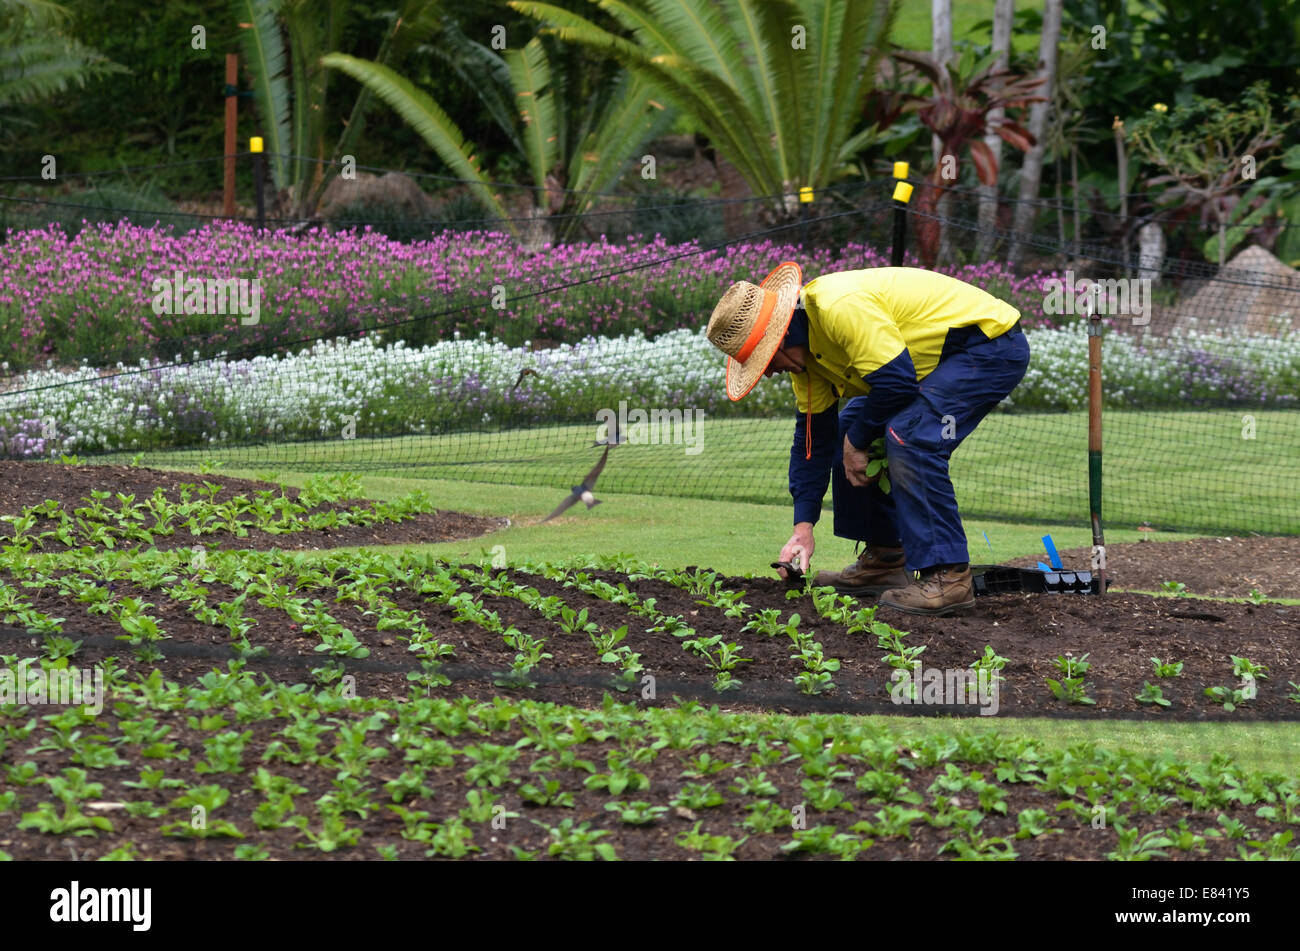 BRISBANE, AUS - SEP 24 2014: A Gardener planting plants at Brisbane City Botanic Gardens - Stock Image